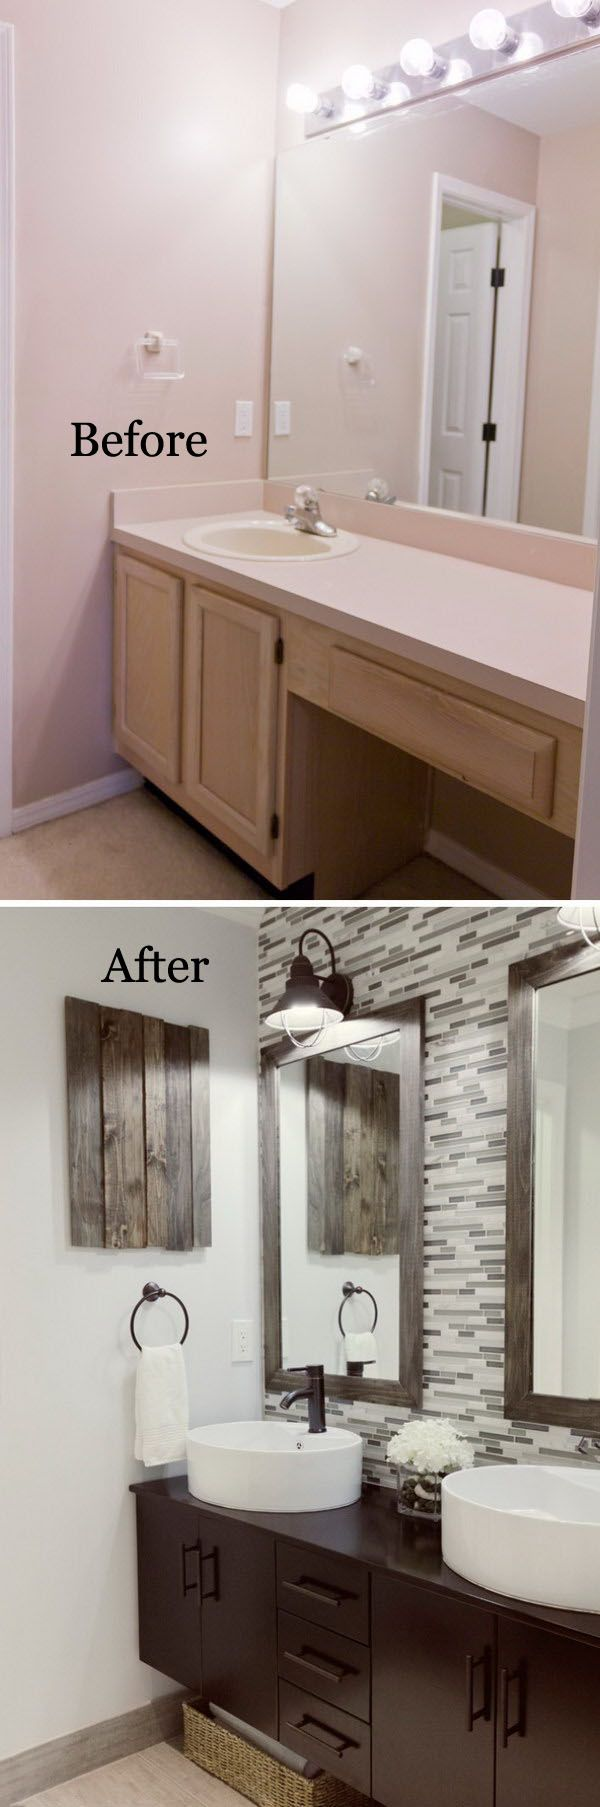 Bathroom Remodel Photos best 25+ bathroom remodeling ideas on pinterest | small bathroom